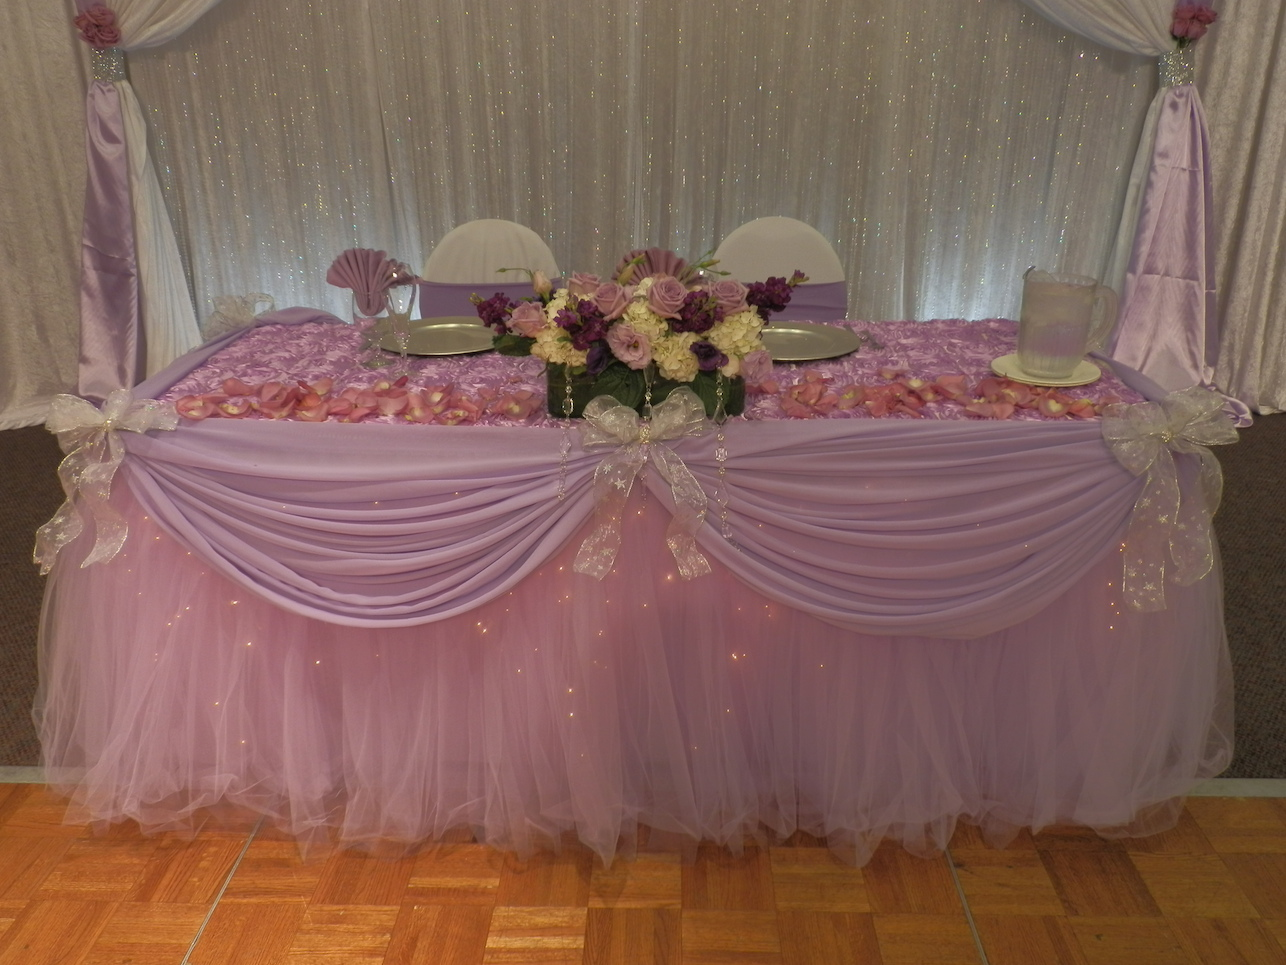 Buffet table skirting - Fantasy Table Skirts Sbd Event Designs Is The Creator Of The One And Only Illuminated Skirt Named Fantasy Table Skirt Patented The Fantasy Table Skirt